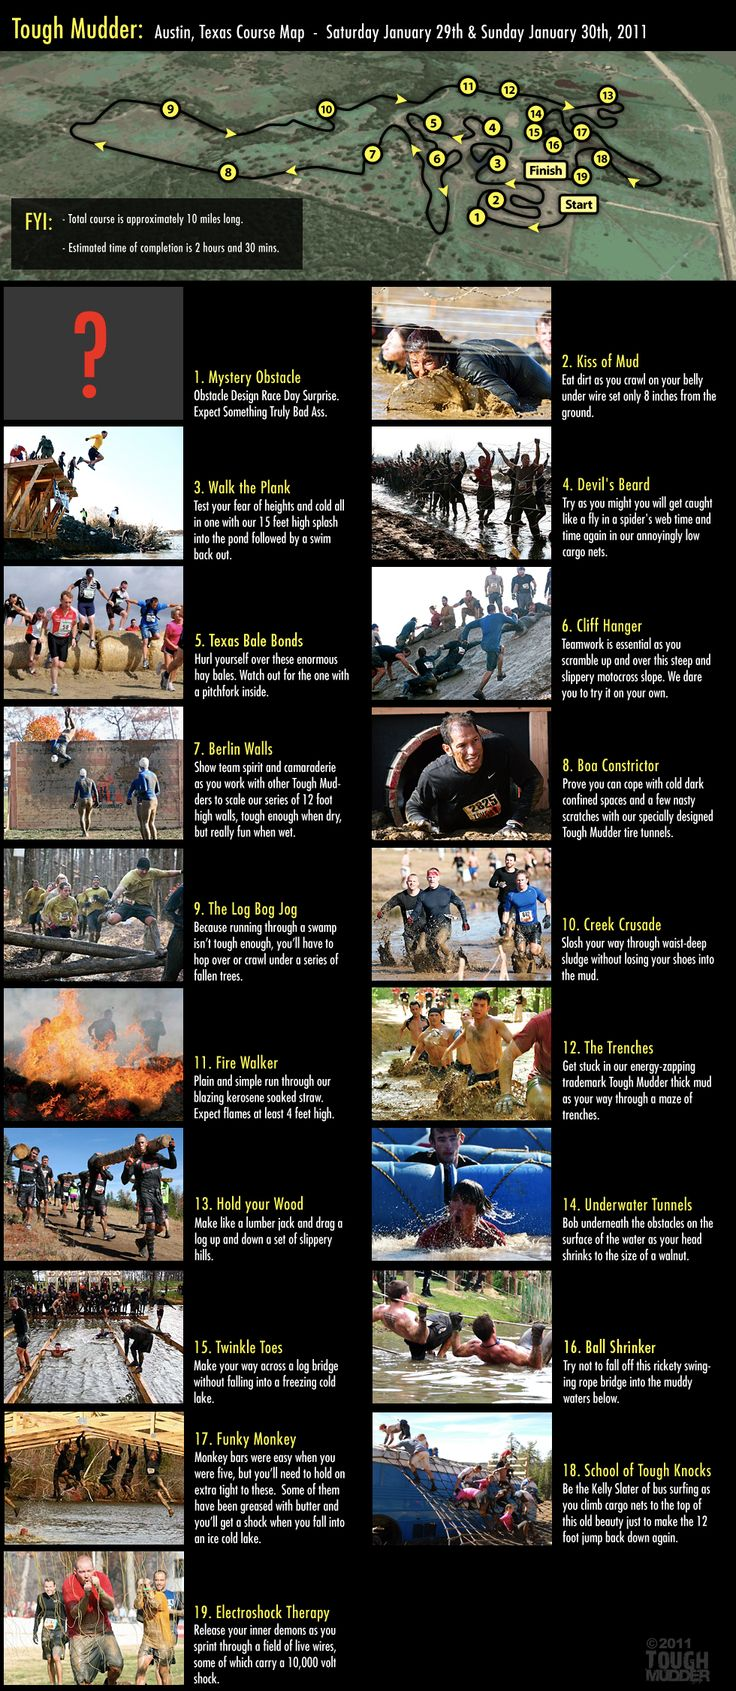 Tough Mudder.. Check out all those obstacles.... I really hate cold water and I'm horrible at climbing things. I guess I better start learning to climb better. Lol.